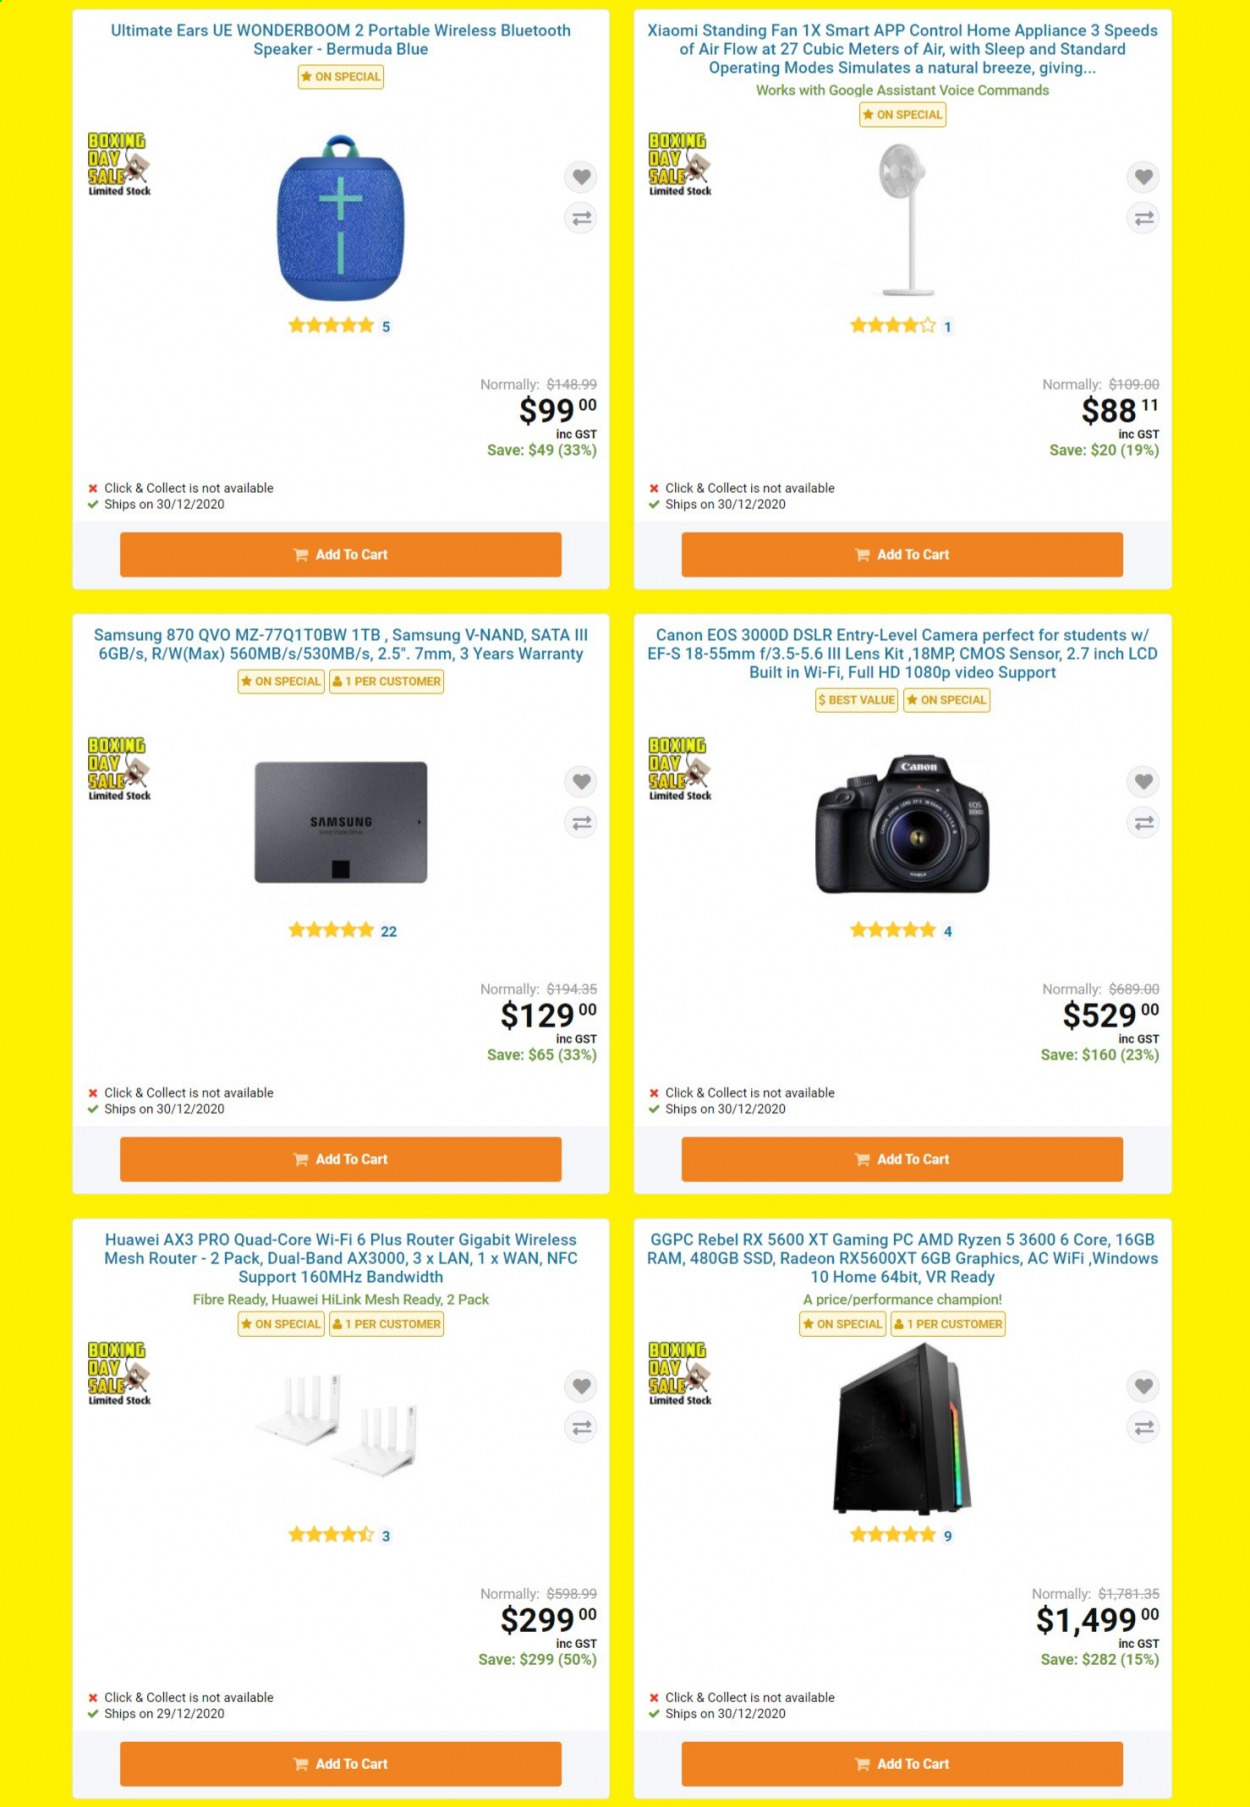 PB Tech mailer - 24.12.2020 - 31.12.2020 - Sales products - amd, camera, Canon, cart, full hd, lens, Radeon, router, Samsung, speaker, Ultimate Ears, wifi, windows, huawei, Champion, Xiaomi, ryzen, ssd. Page 3.